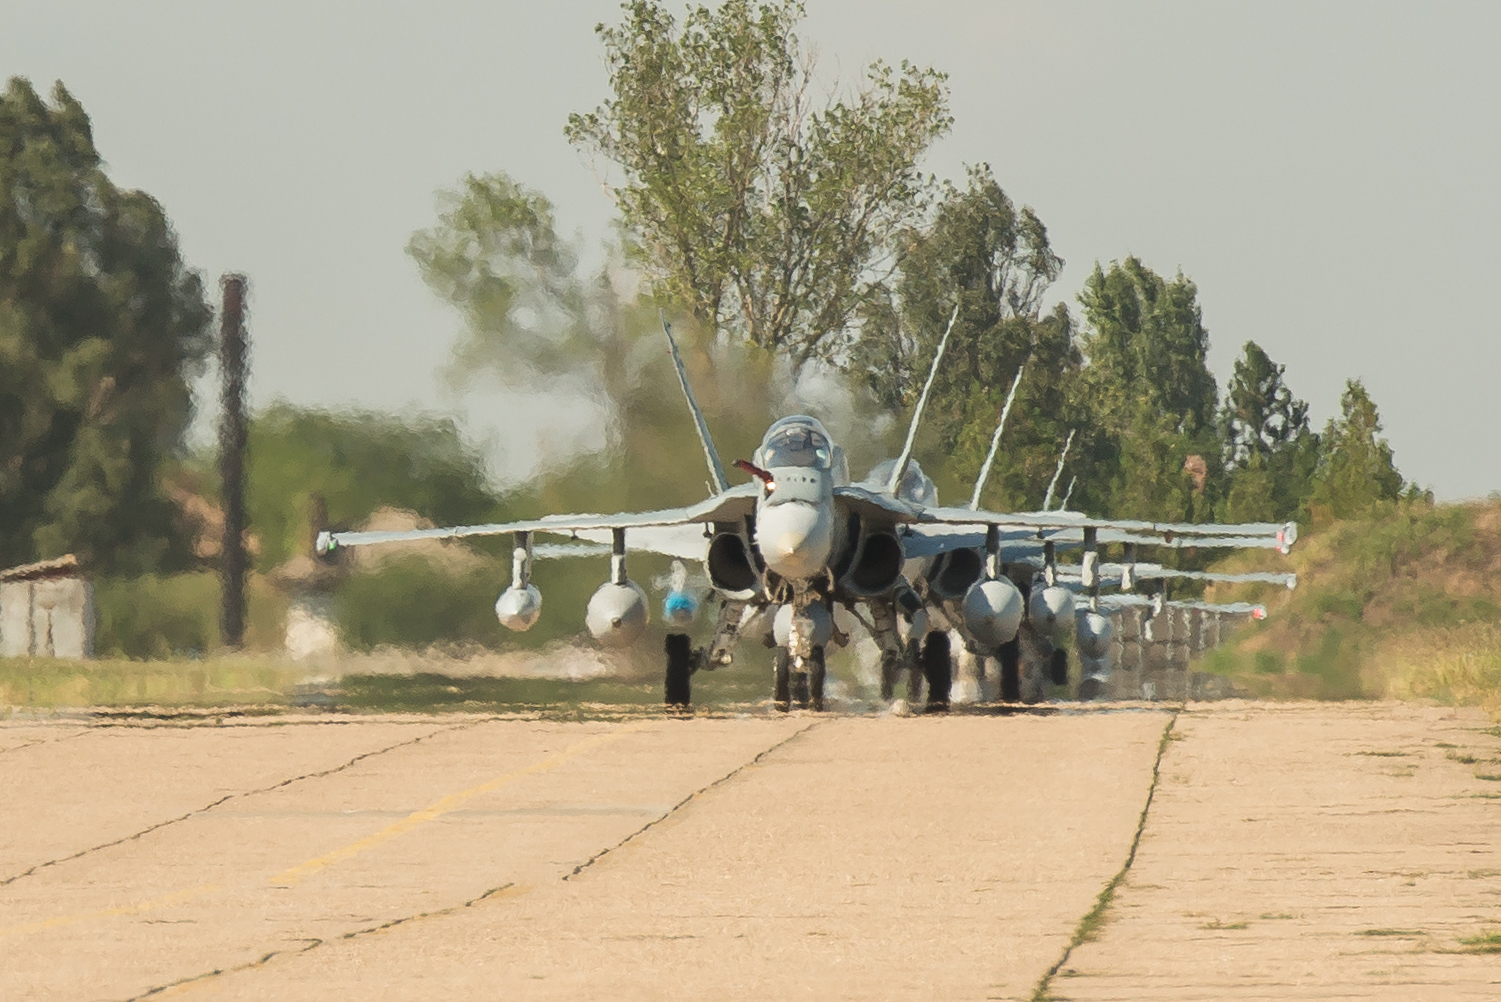 On August 20, 2017, four CF-188 Hornet fighters from 409 Tactical Fighter Squadron, located at 4 Wing Cold Lake, Alberta, arrive at Mihail Kogalniceanu Air Base, Constanta, Romania. The aircraft are taking part in NATO's enhanced air policing as part of Canada's Air Task Force-Romania, which will last until December 2017. PHOTO: Sergeant Daren Kraus, RP14-2017-0002-05